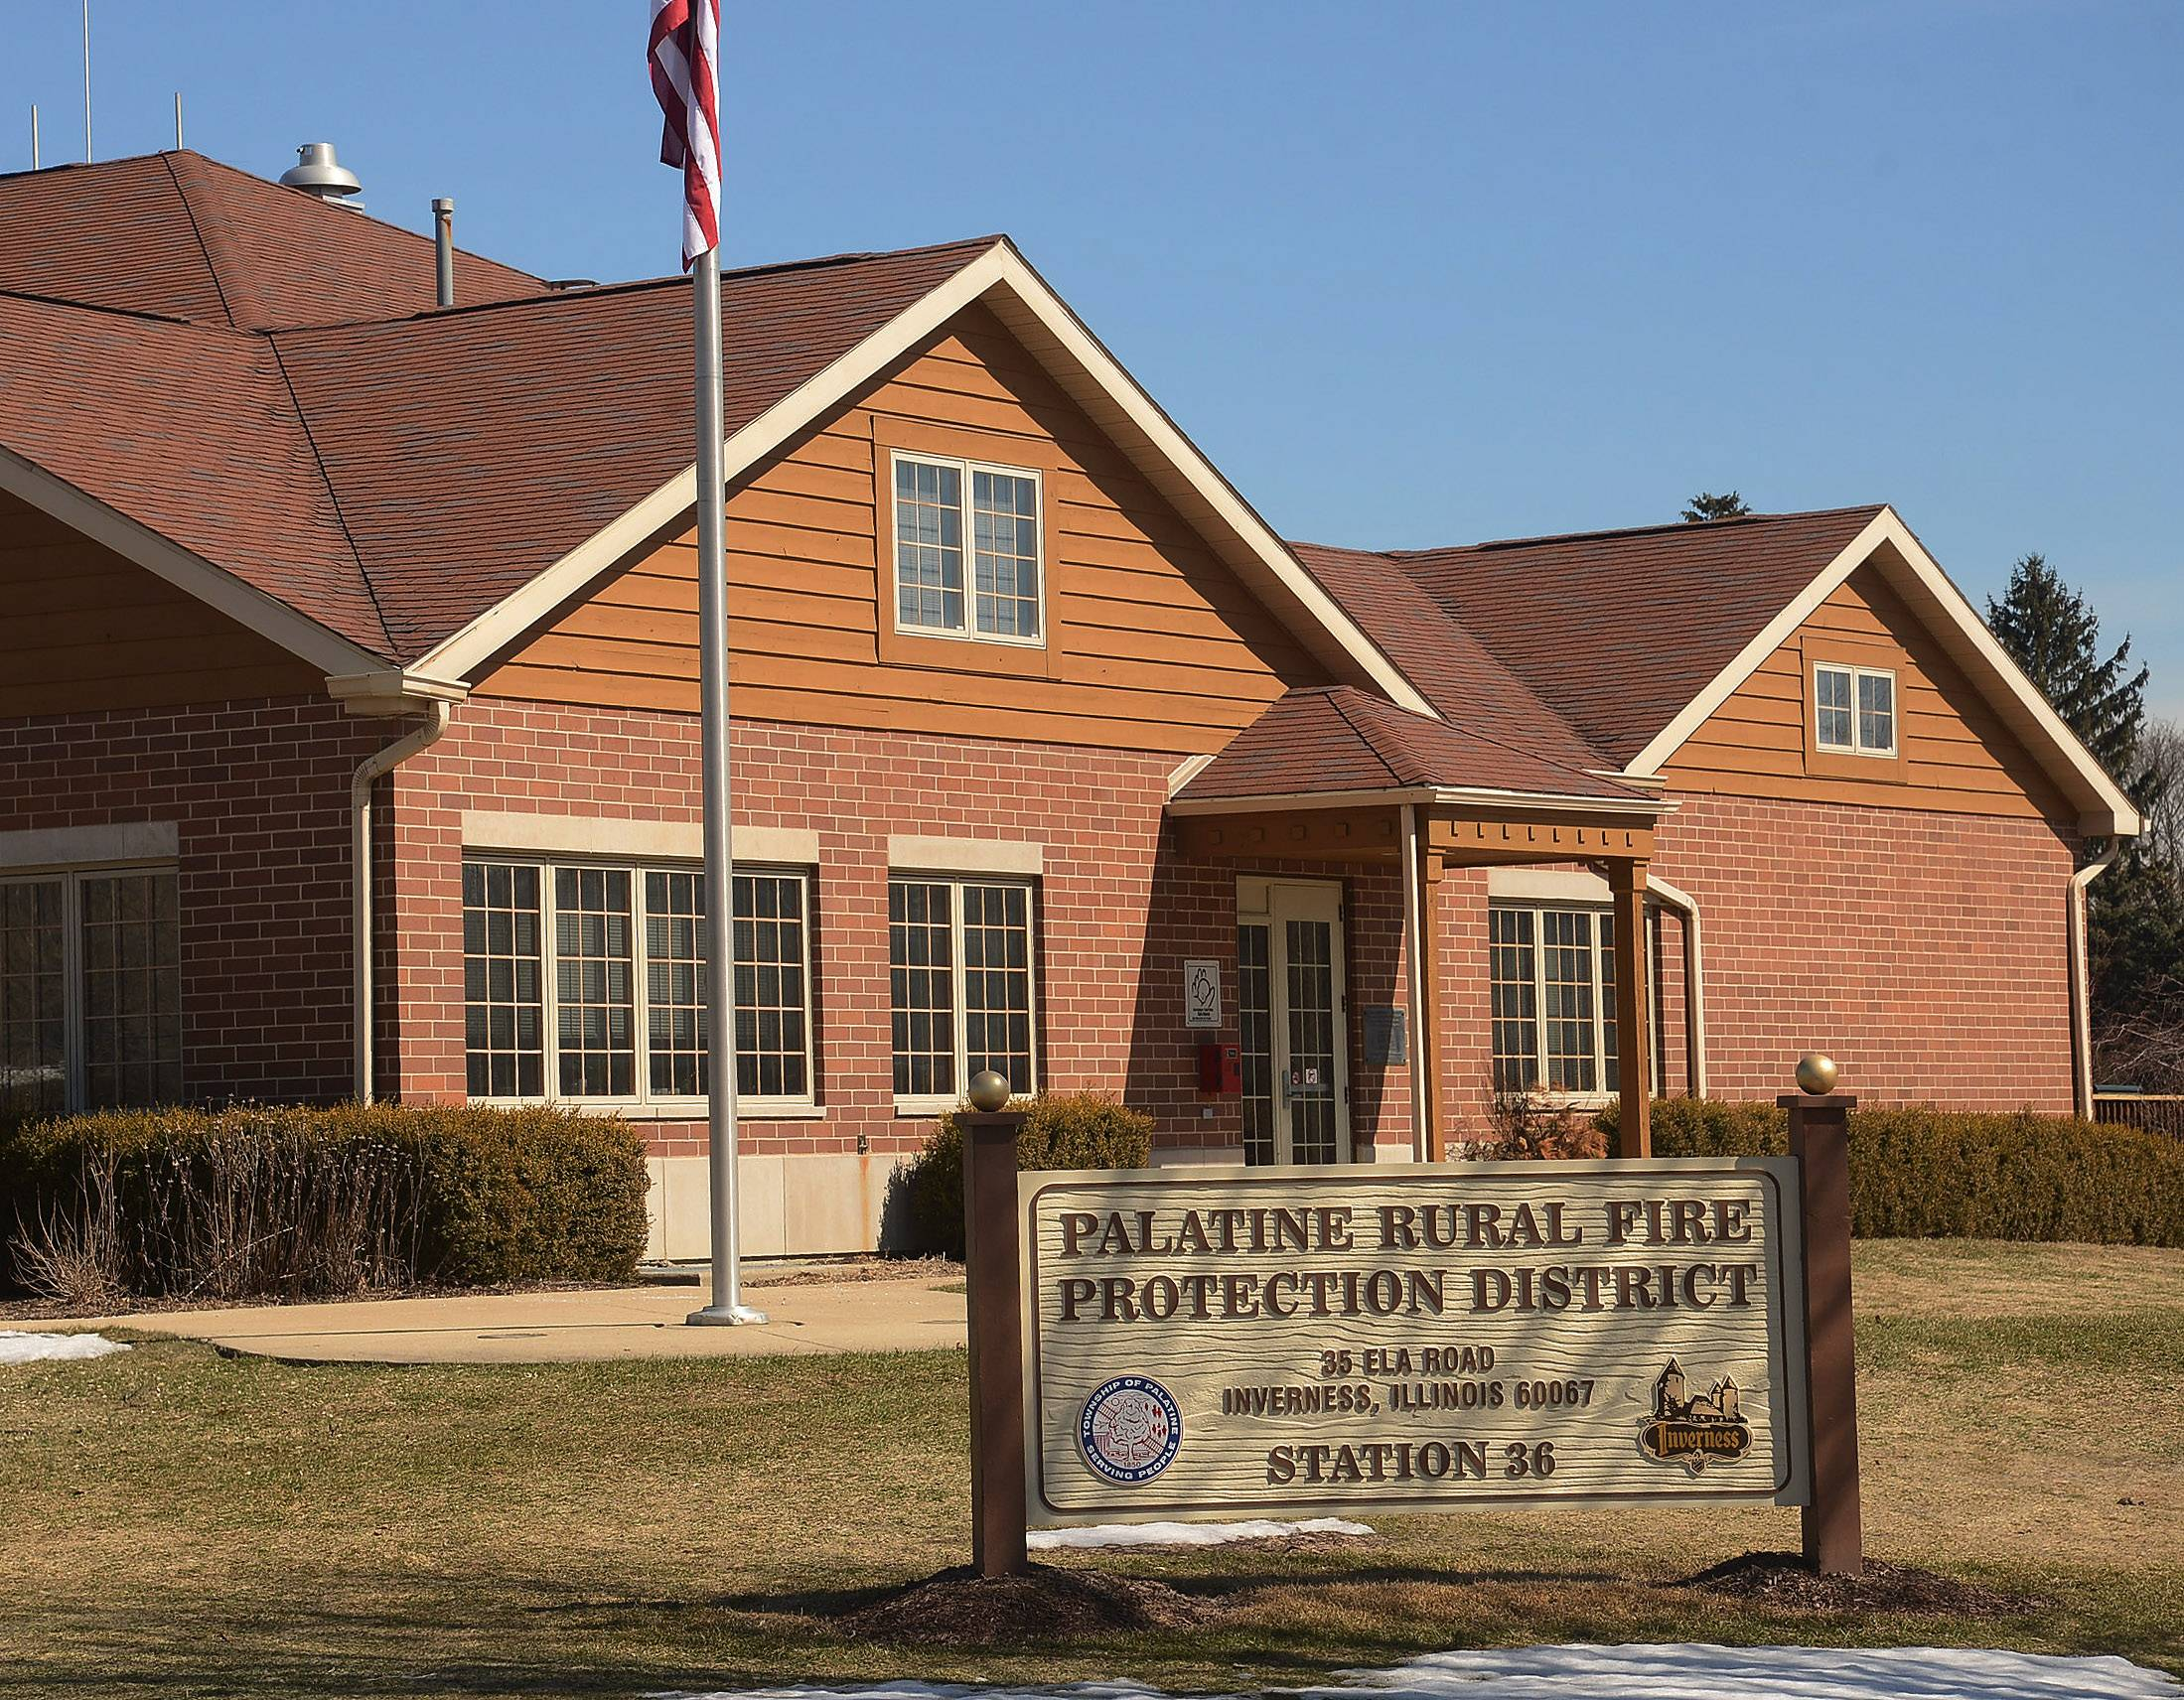 The Palatine Rural Fire Protection District will again ask voters for permission for a property tax increase intended to generate an additional $200,000 per year. Officials say the extra funds are necessary to stop the district from operating in the red.